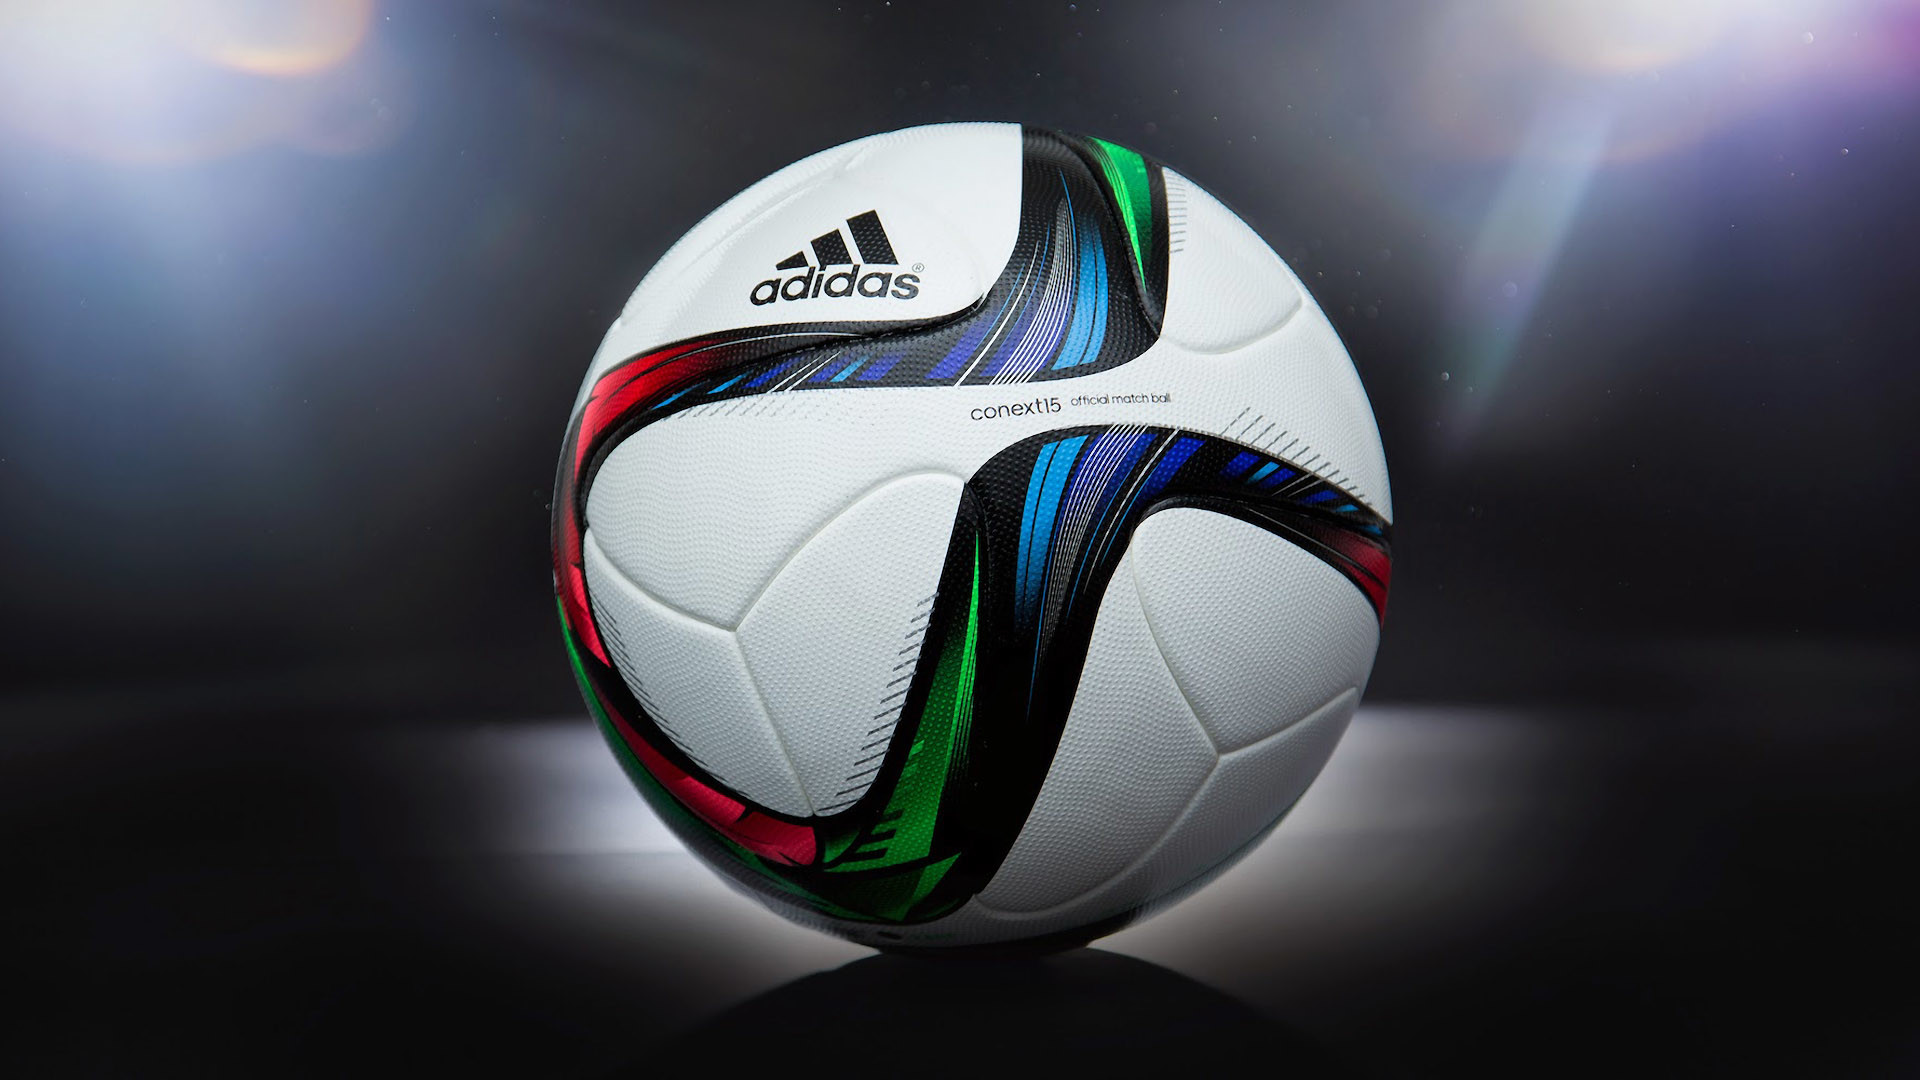 Amazing Soccer Wallpapers: Cool Soccer Ball Wallpaper (63+ Images